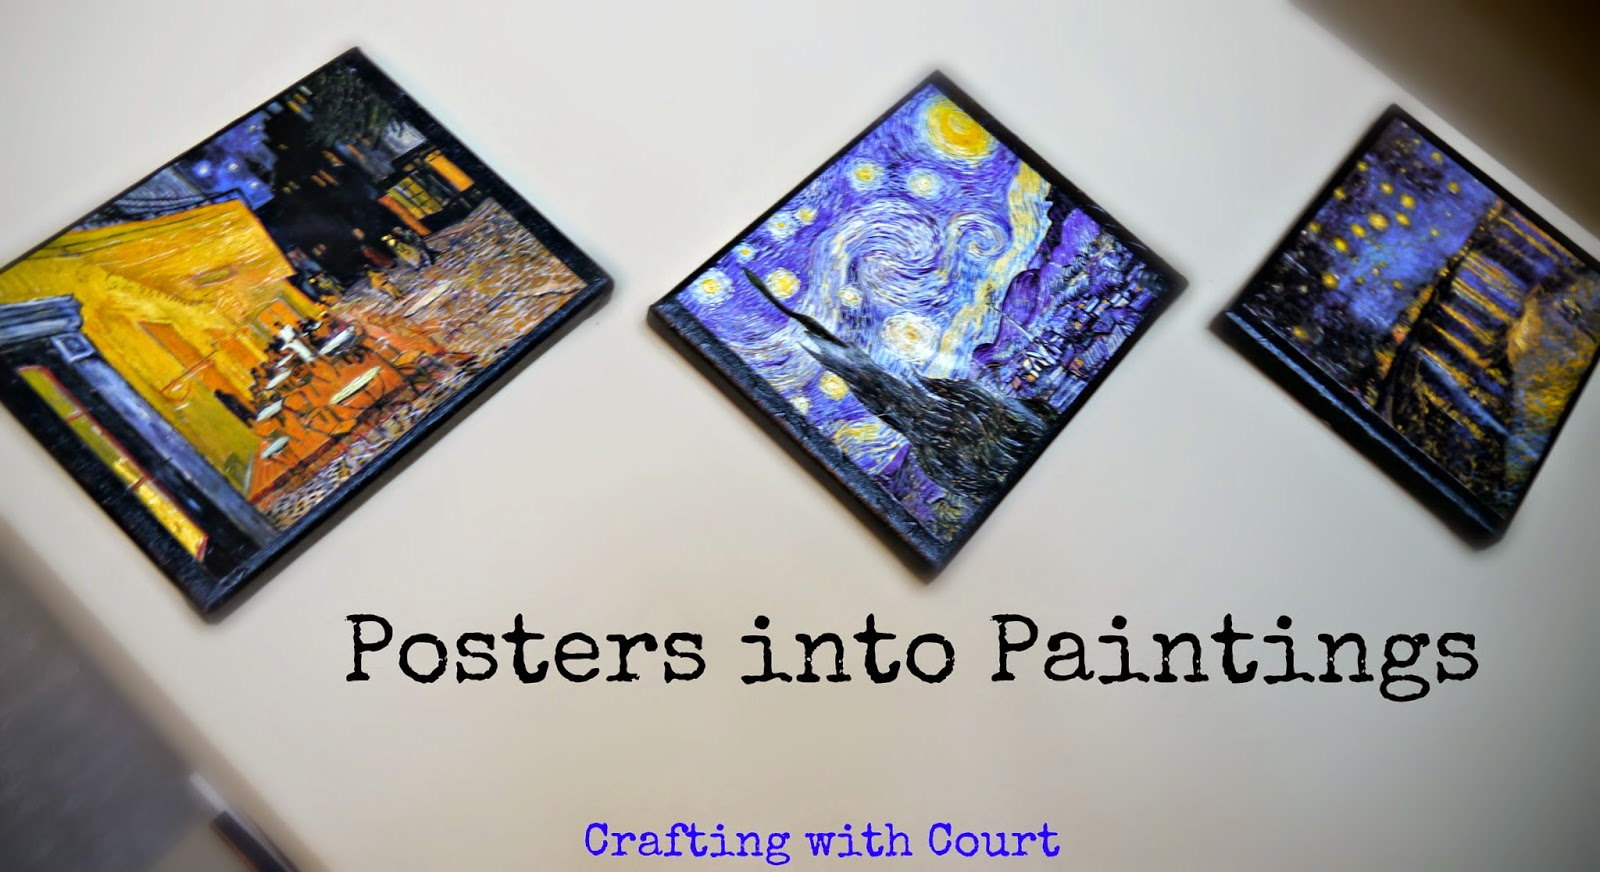 crafting with court posters into paintings